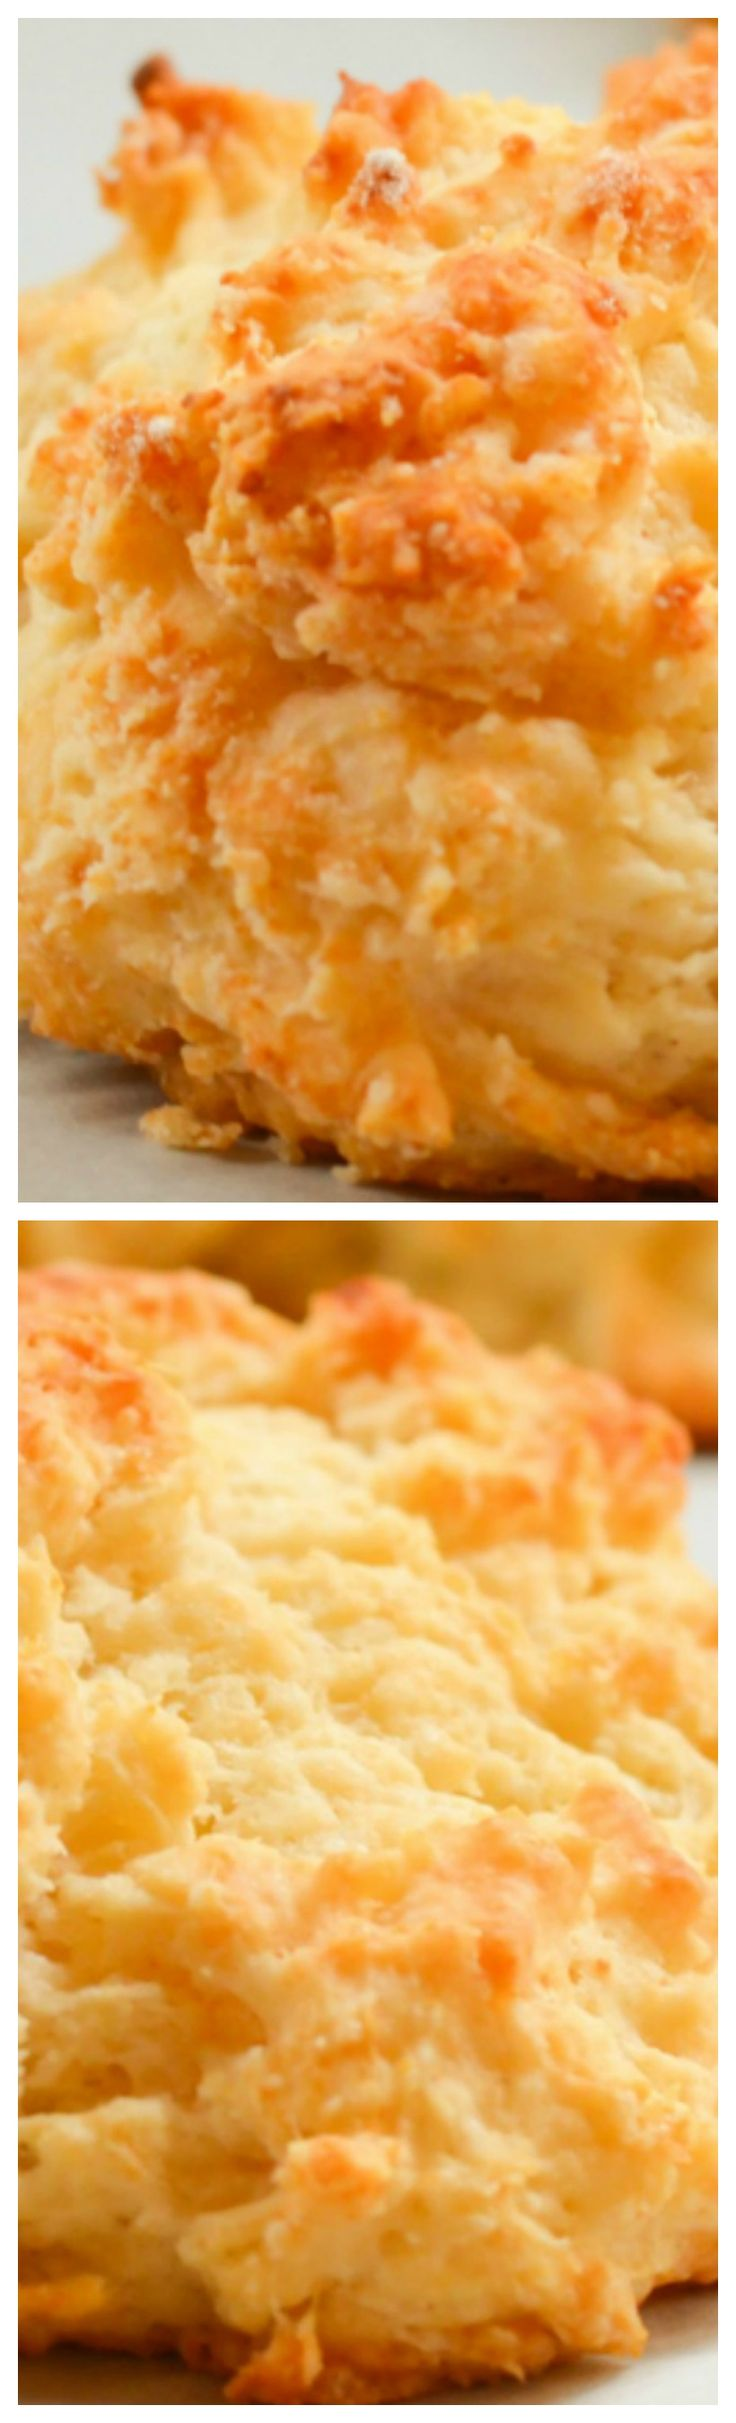 Easy to make Buttermilk Drop Biscuits ~ The perfect vessel for Biscuits with Gravy or smothered in butter with jam.